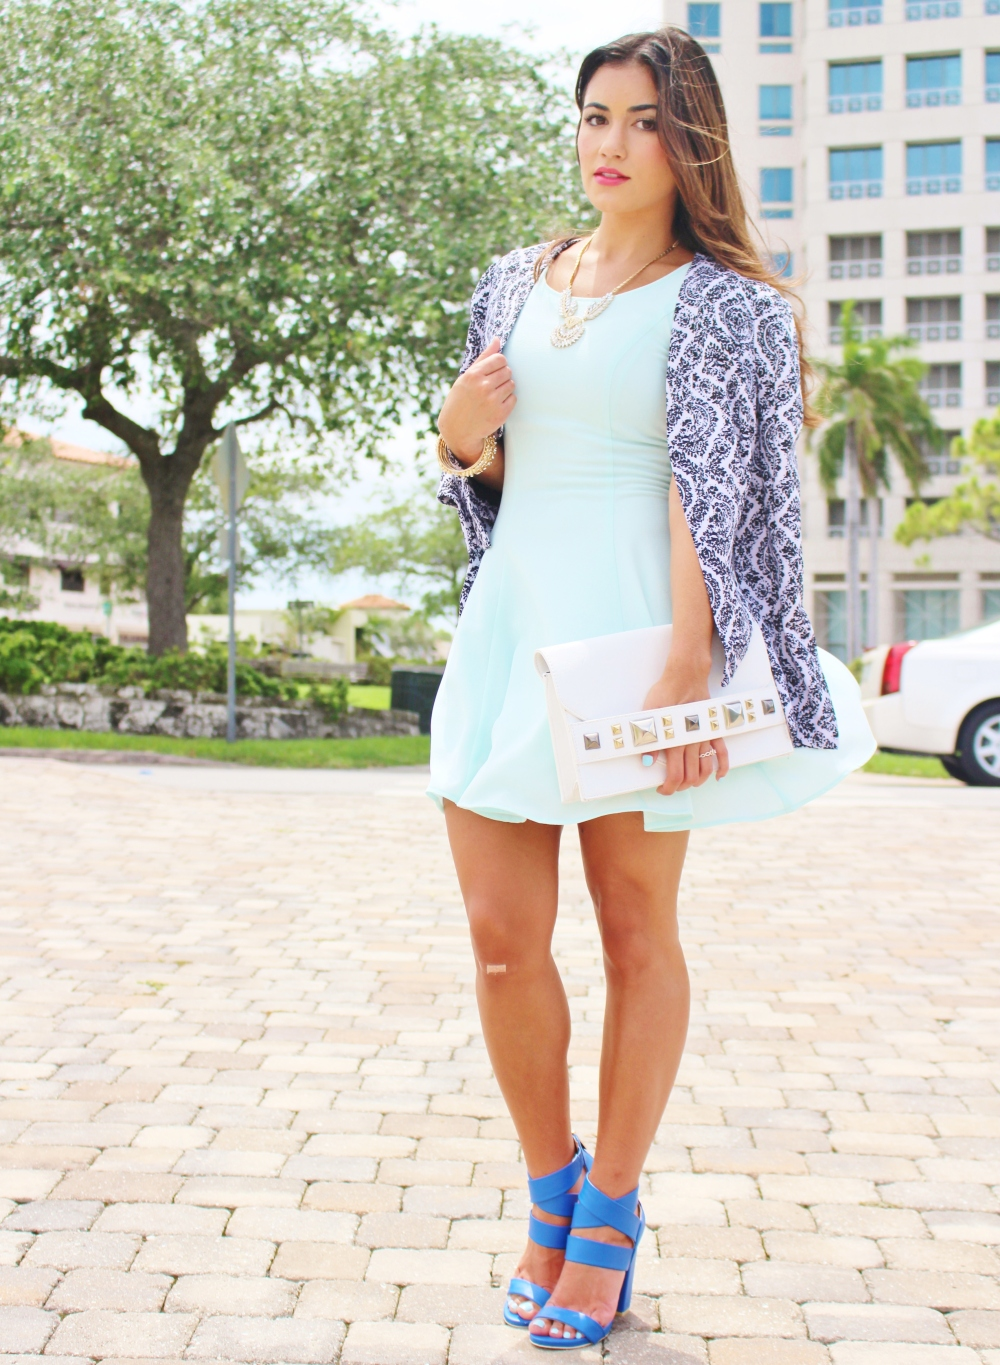 Mint Dress + Patterned Balzer